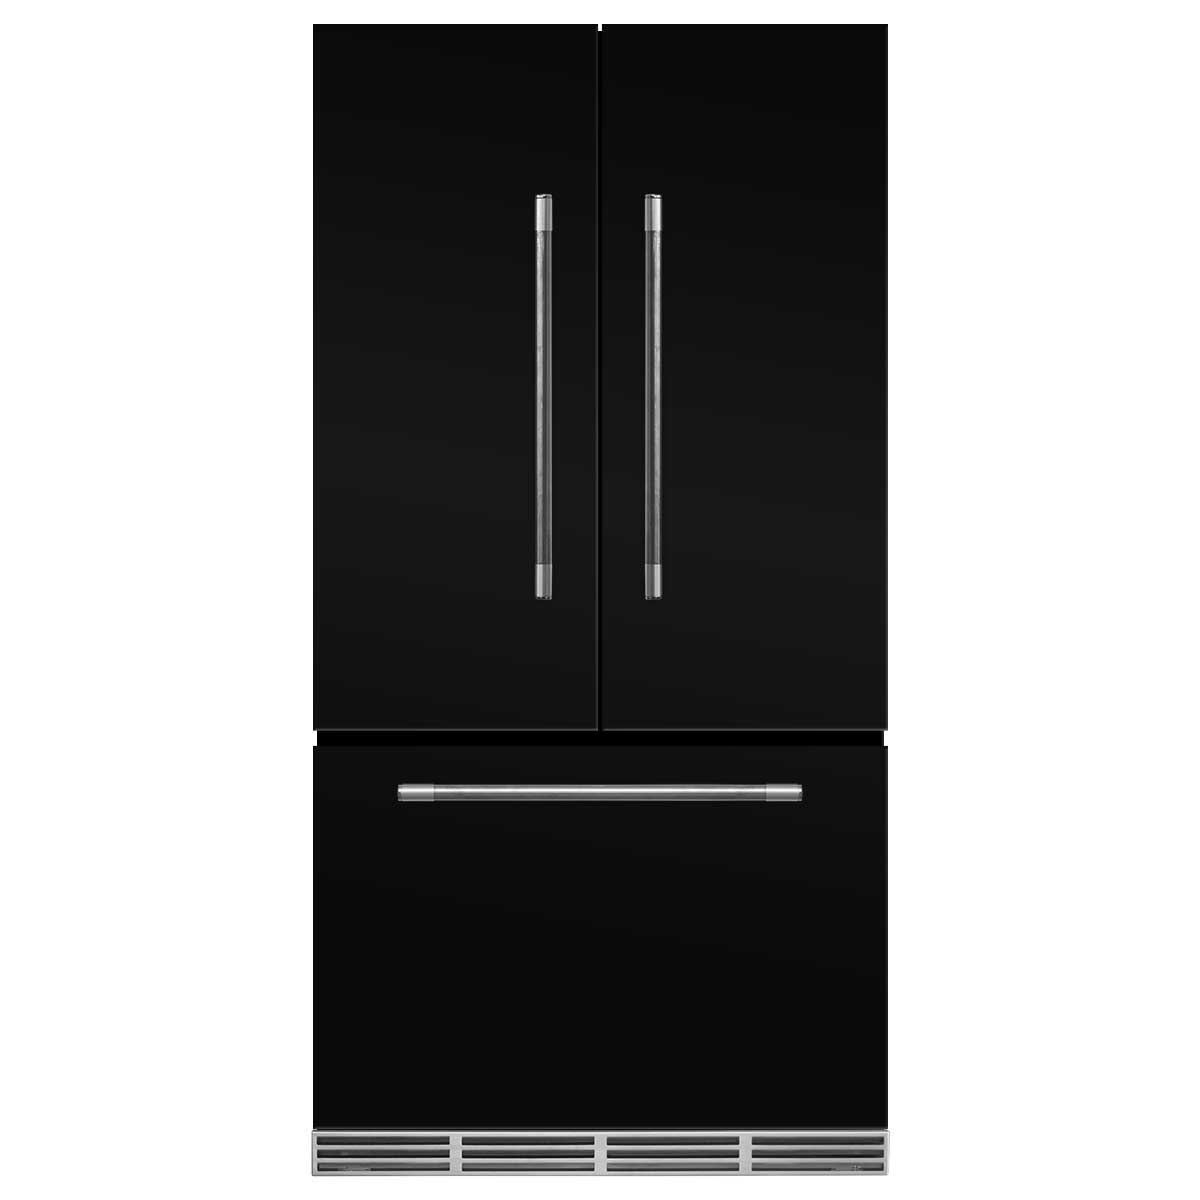 Marvel  Marvel Mercury French Door Counter-Depth Refrigerator- Marvel Mercury French Door Refrigerator Gloos Black